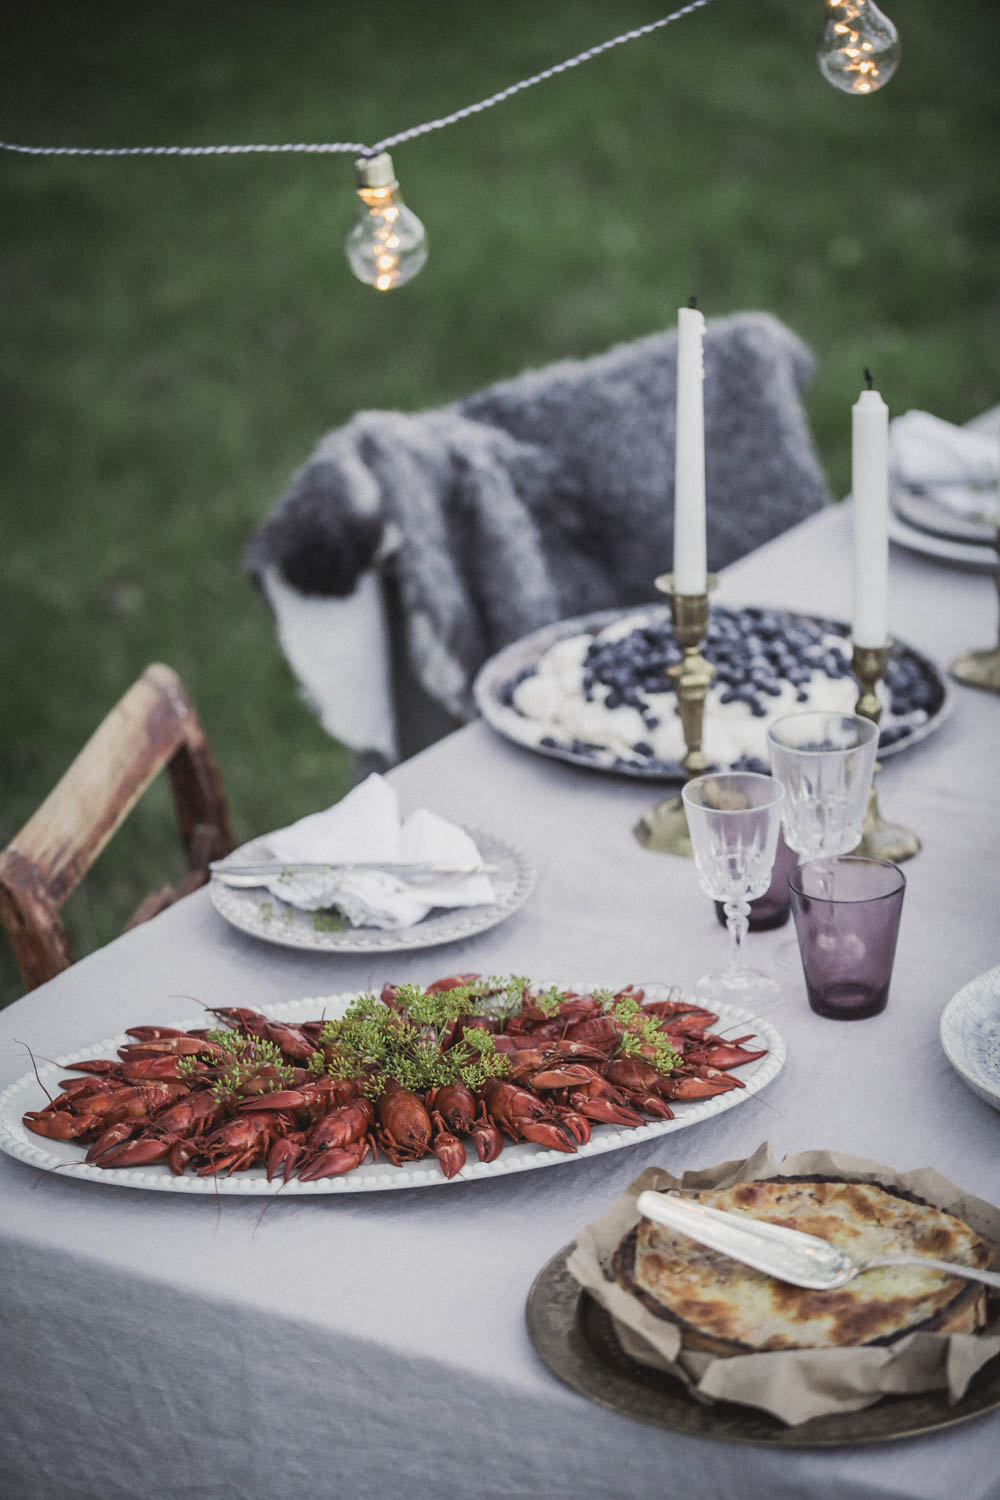 Crayfish Party on Gotland Foto Emily Dahl-21.jpg